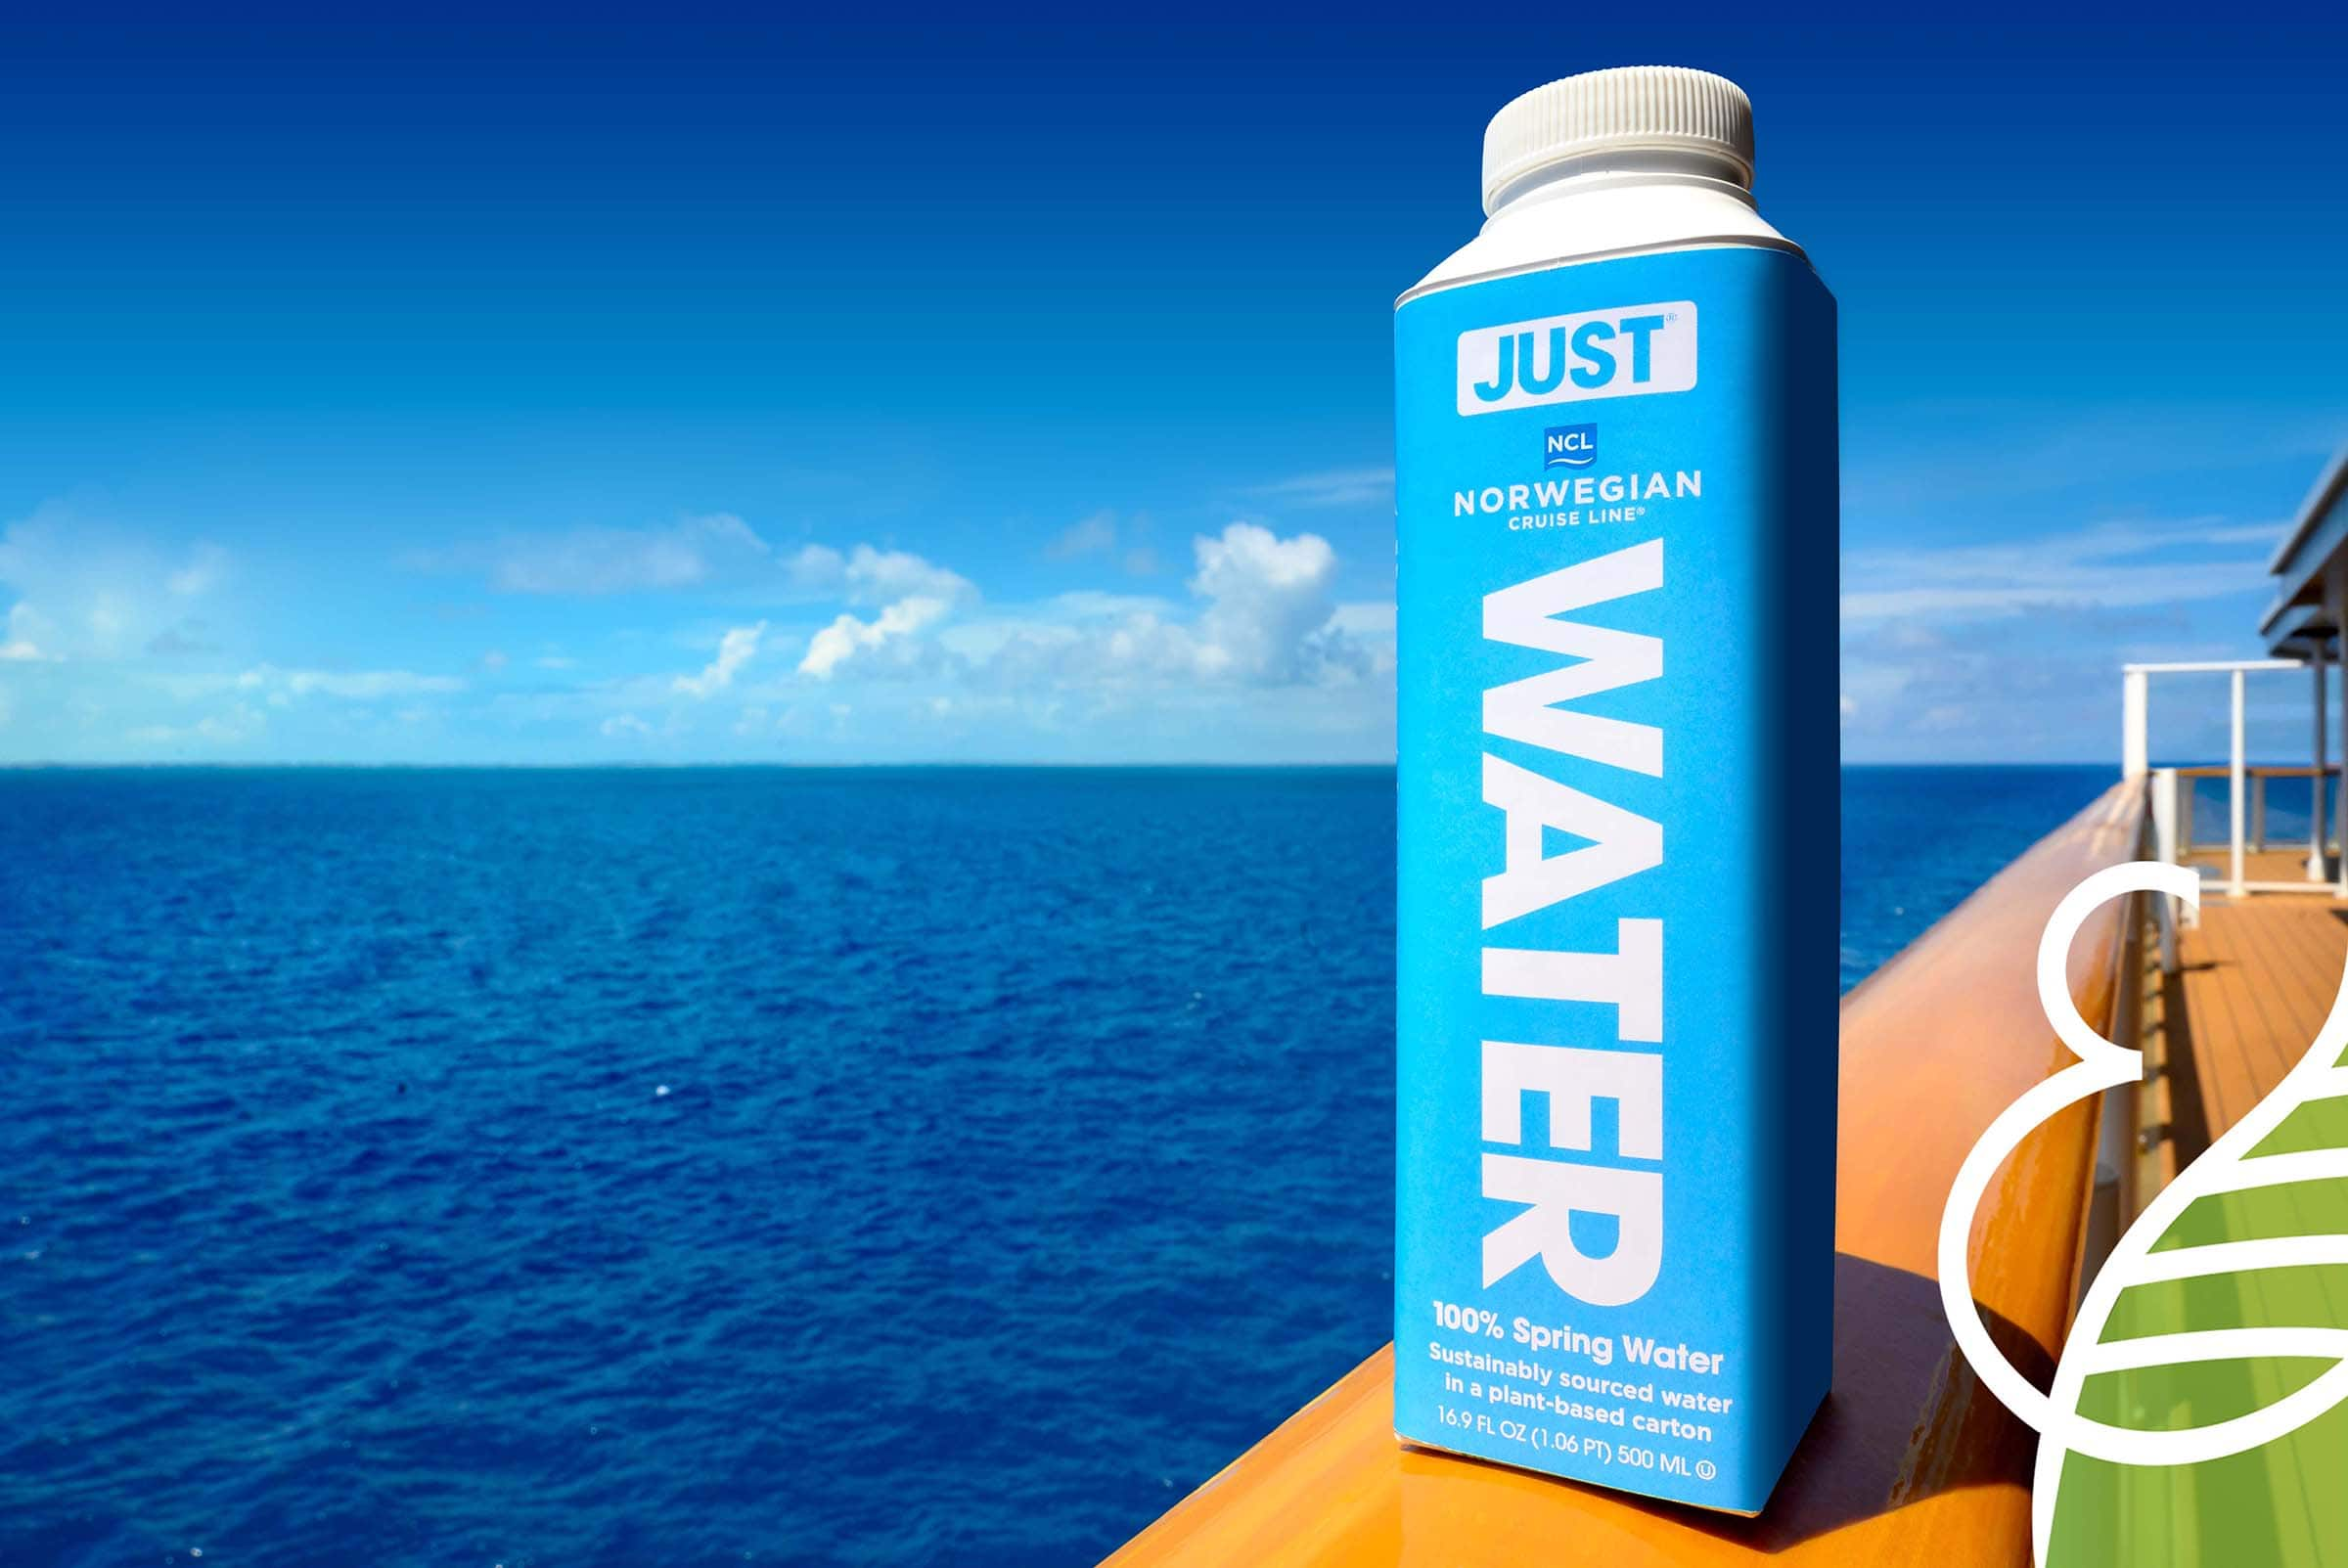 Norwegian Cruise Line has replaced all single-use plastic beverage bottles acros